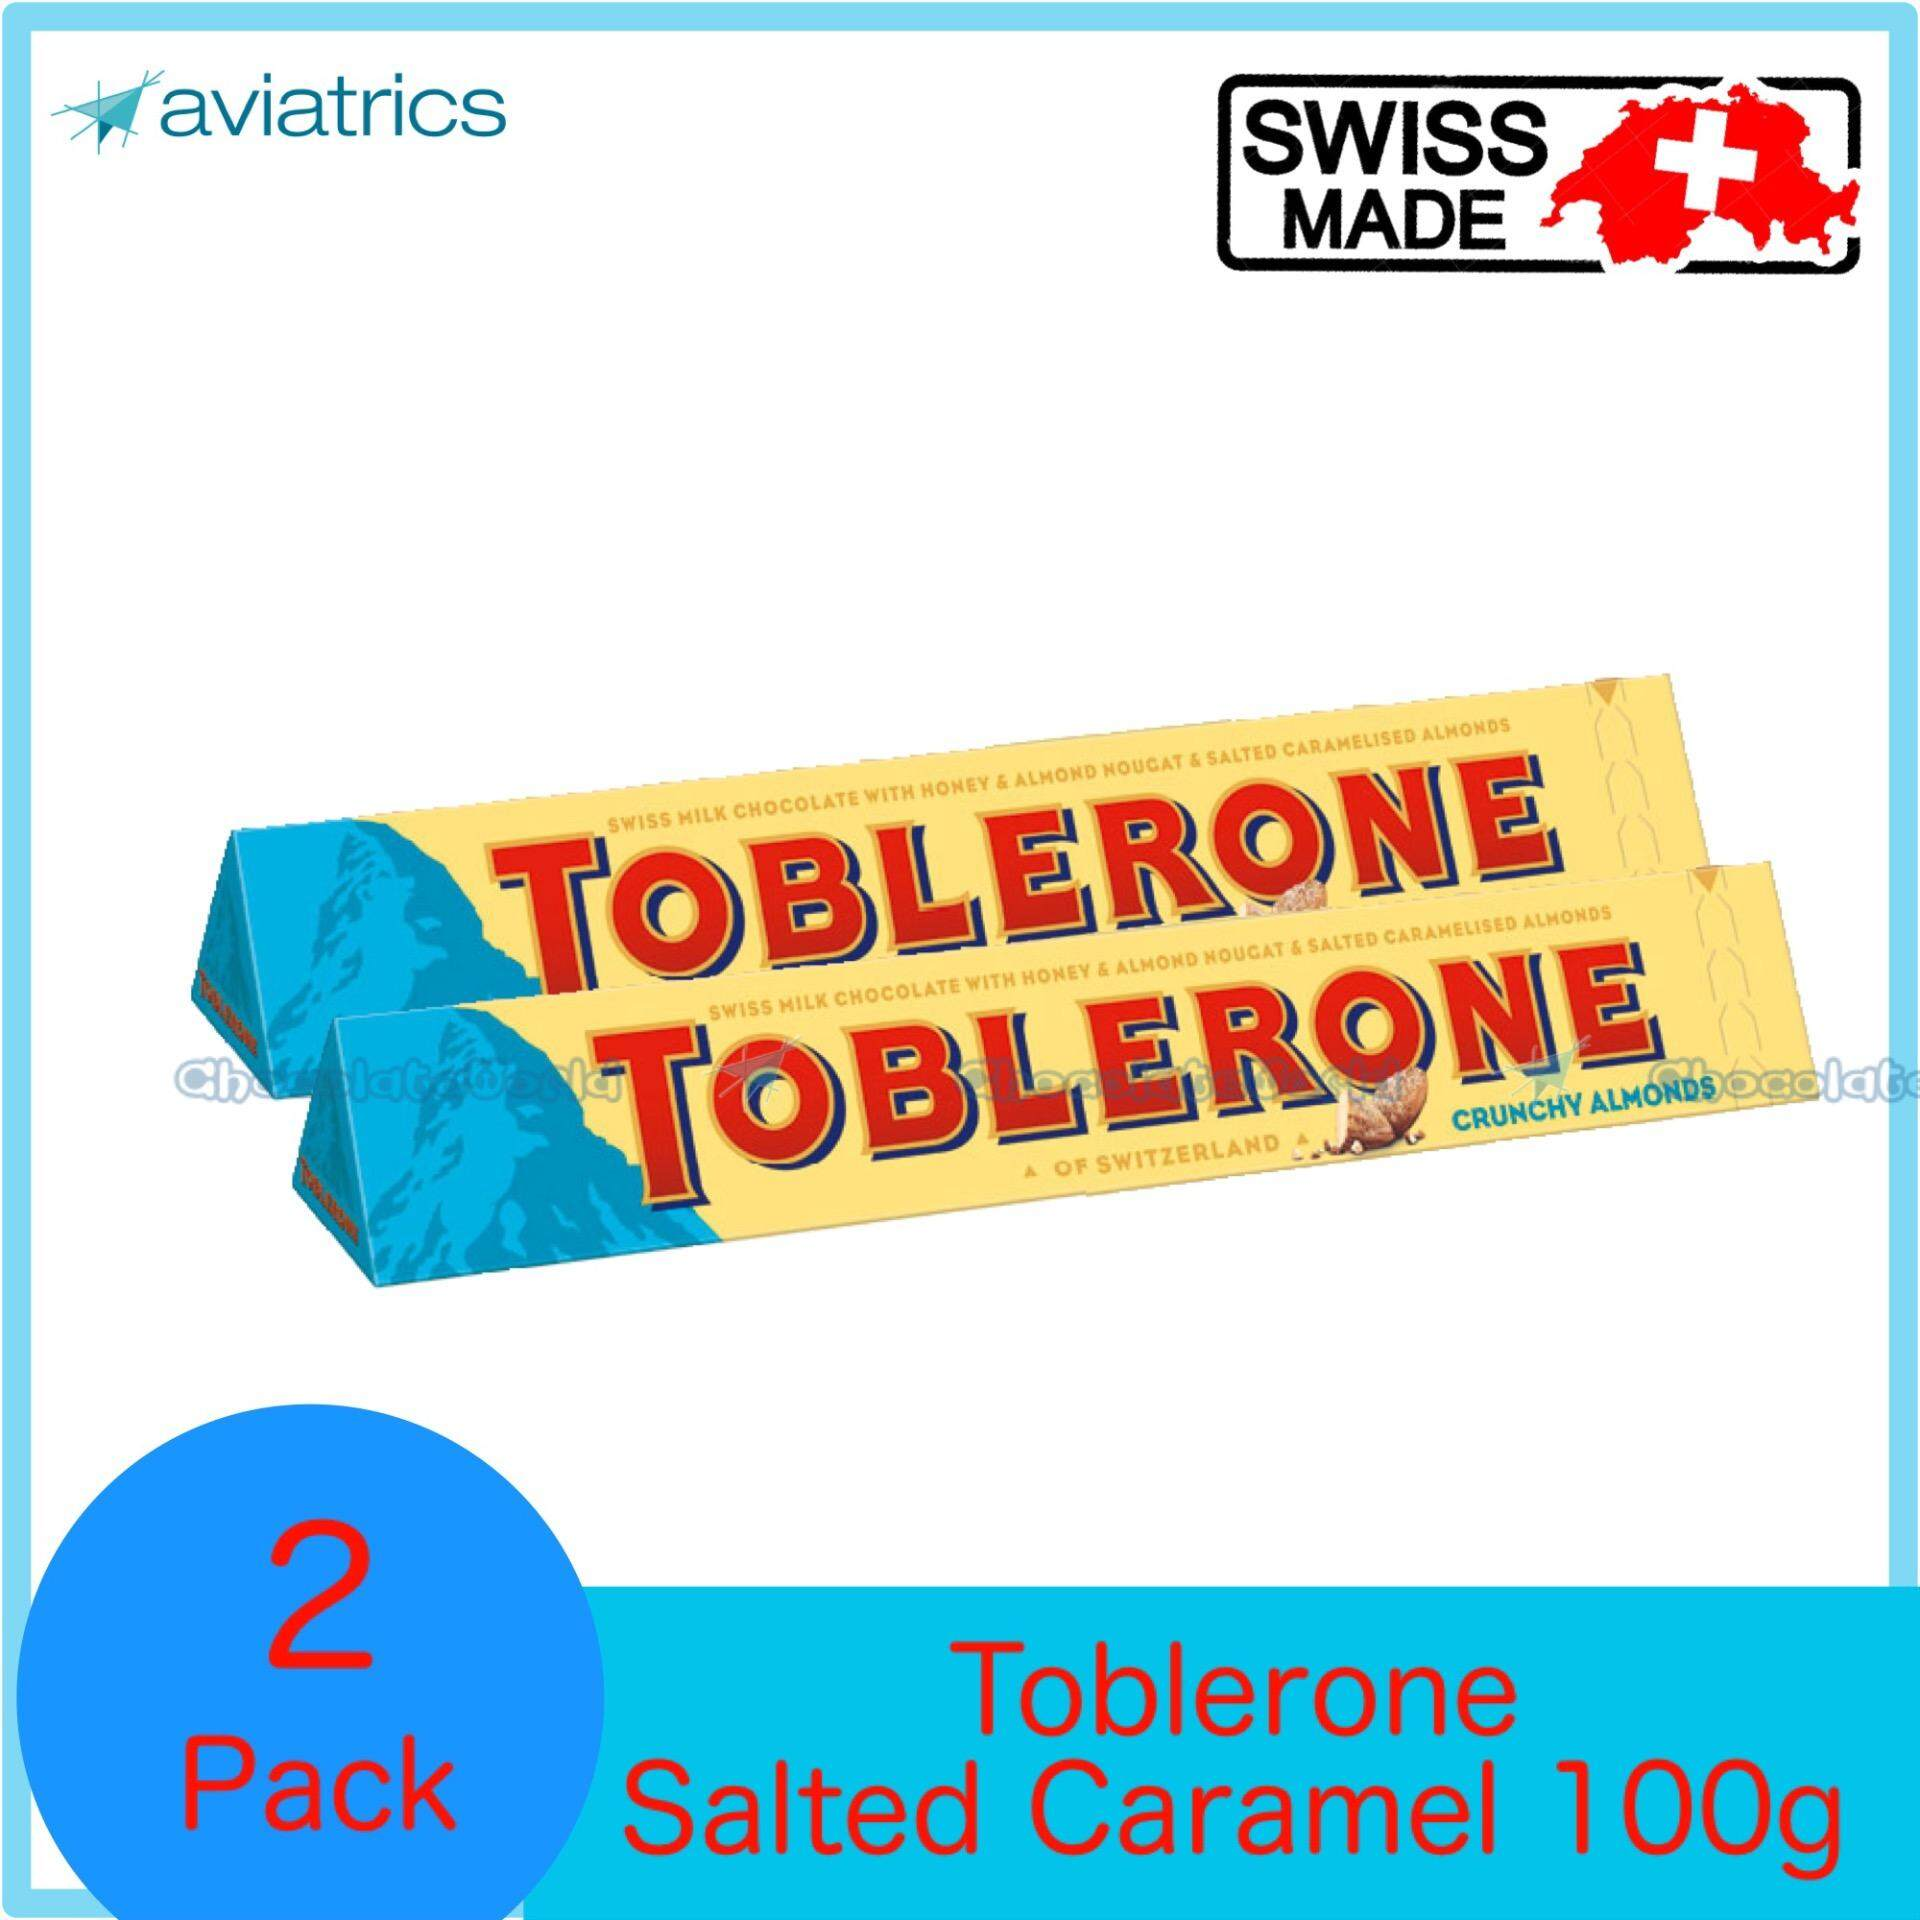 Toblerone with Salted Caramelised Almond 100g X 2 (SWISS MADE)